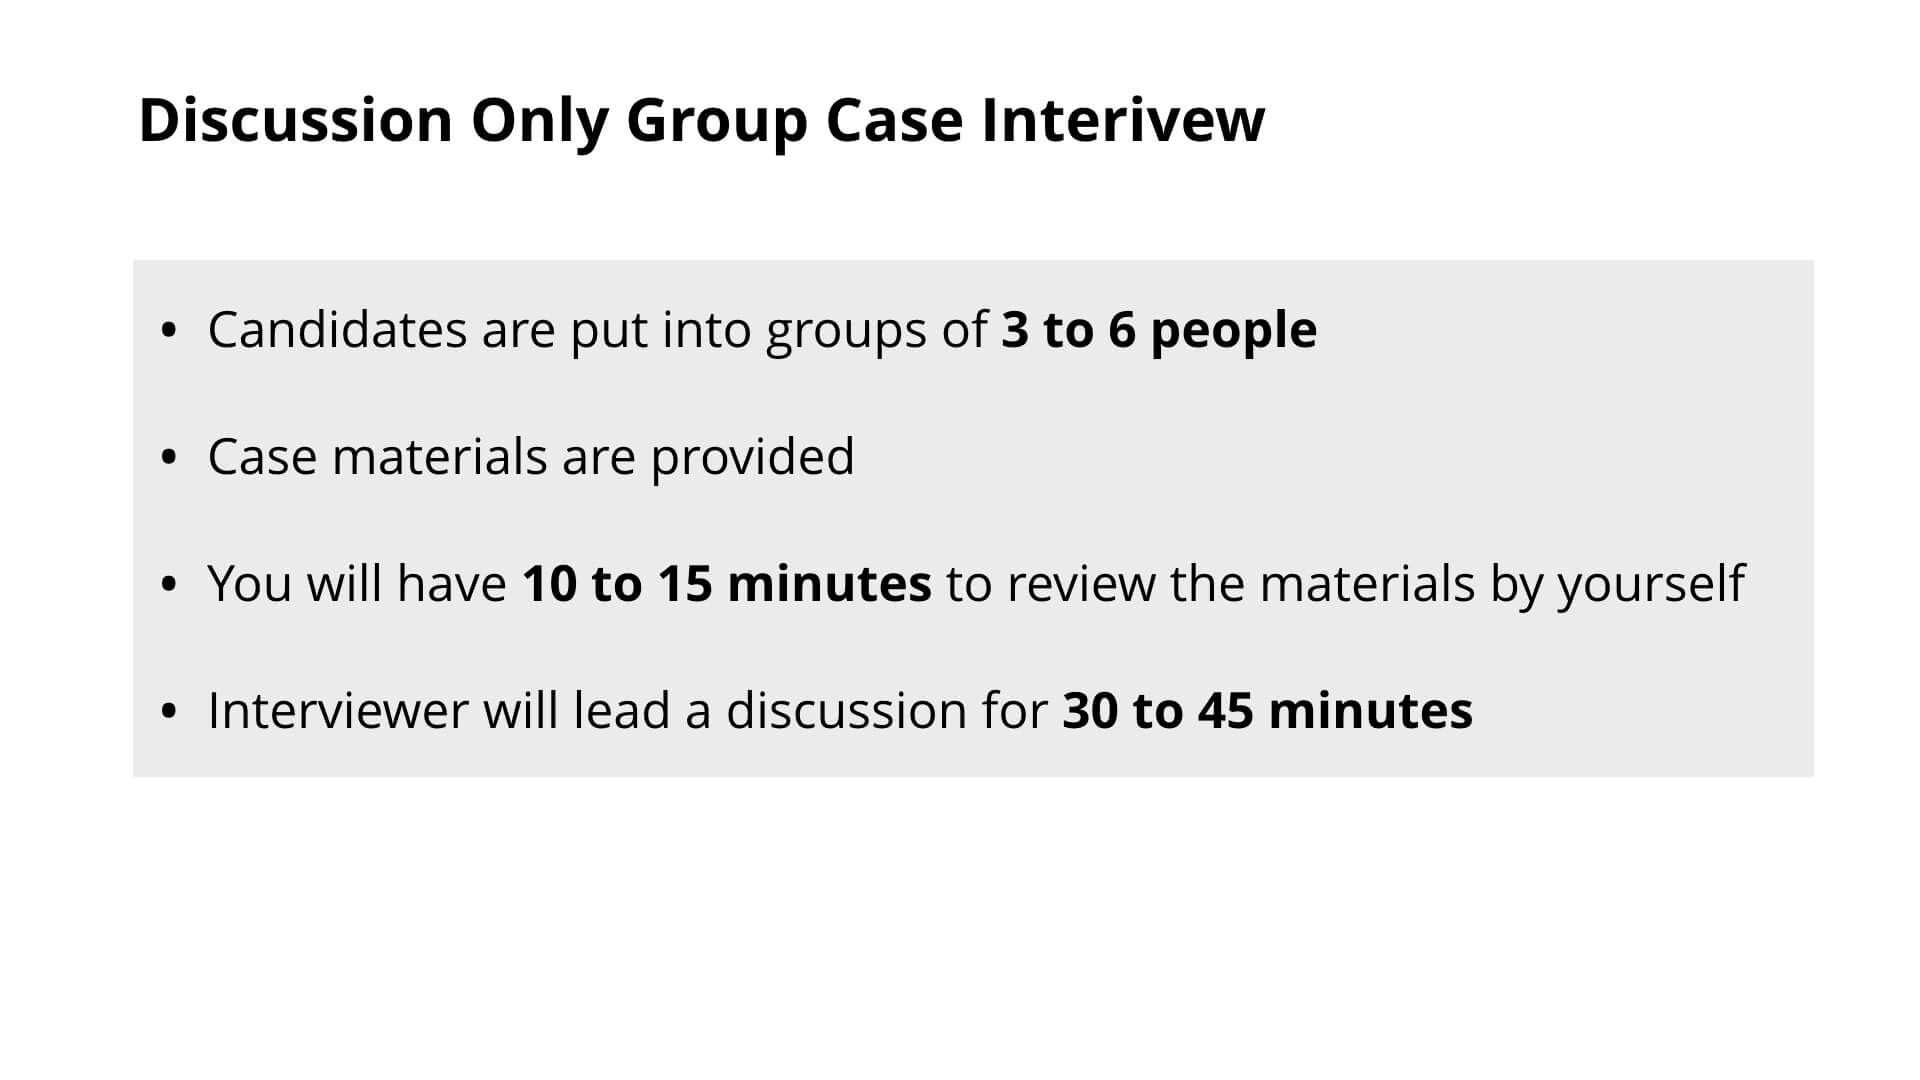 Consulting Group Case Interview - Discussion Only